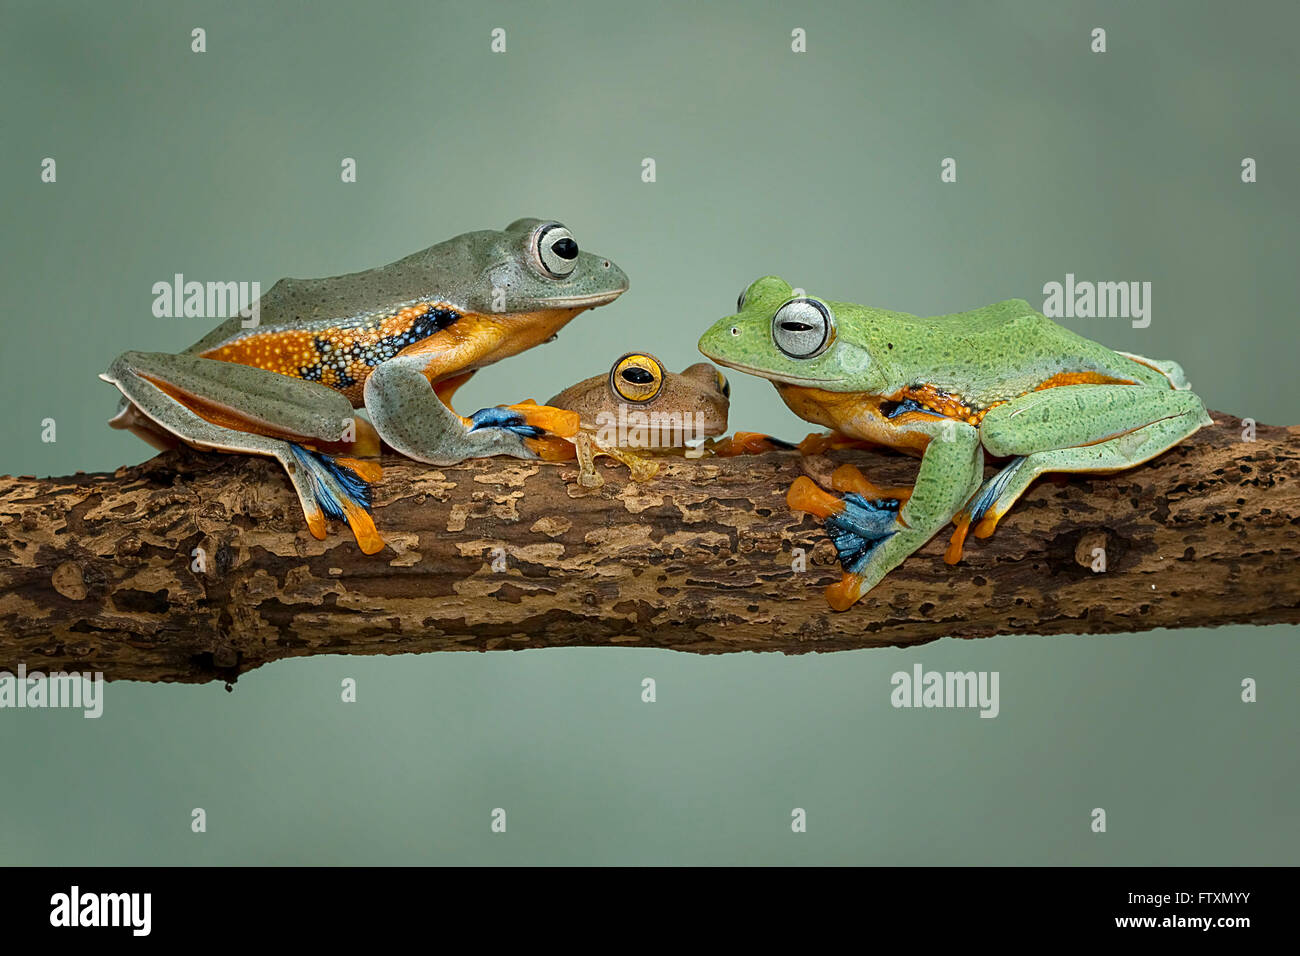 Three tree frogs sitting on branch, Indonesia - Stock Image